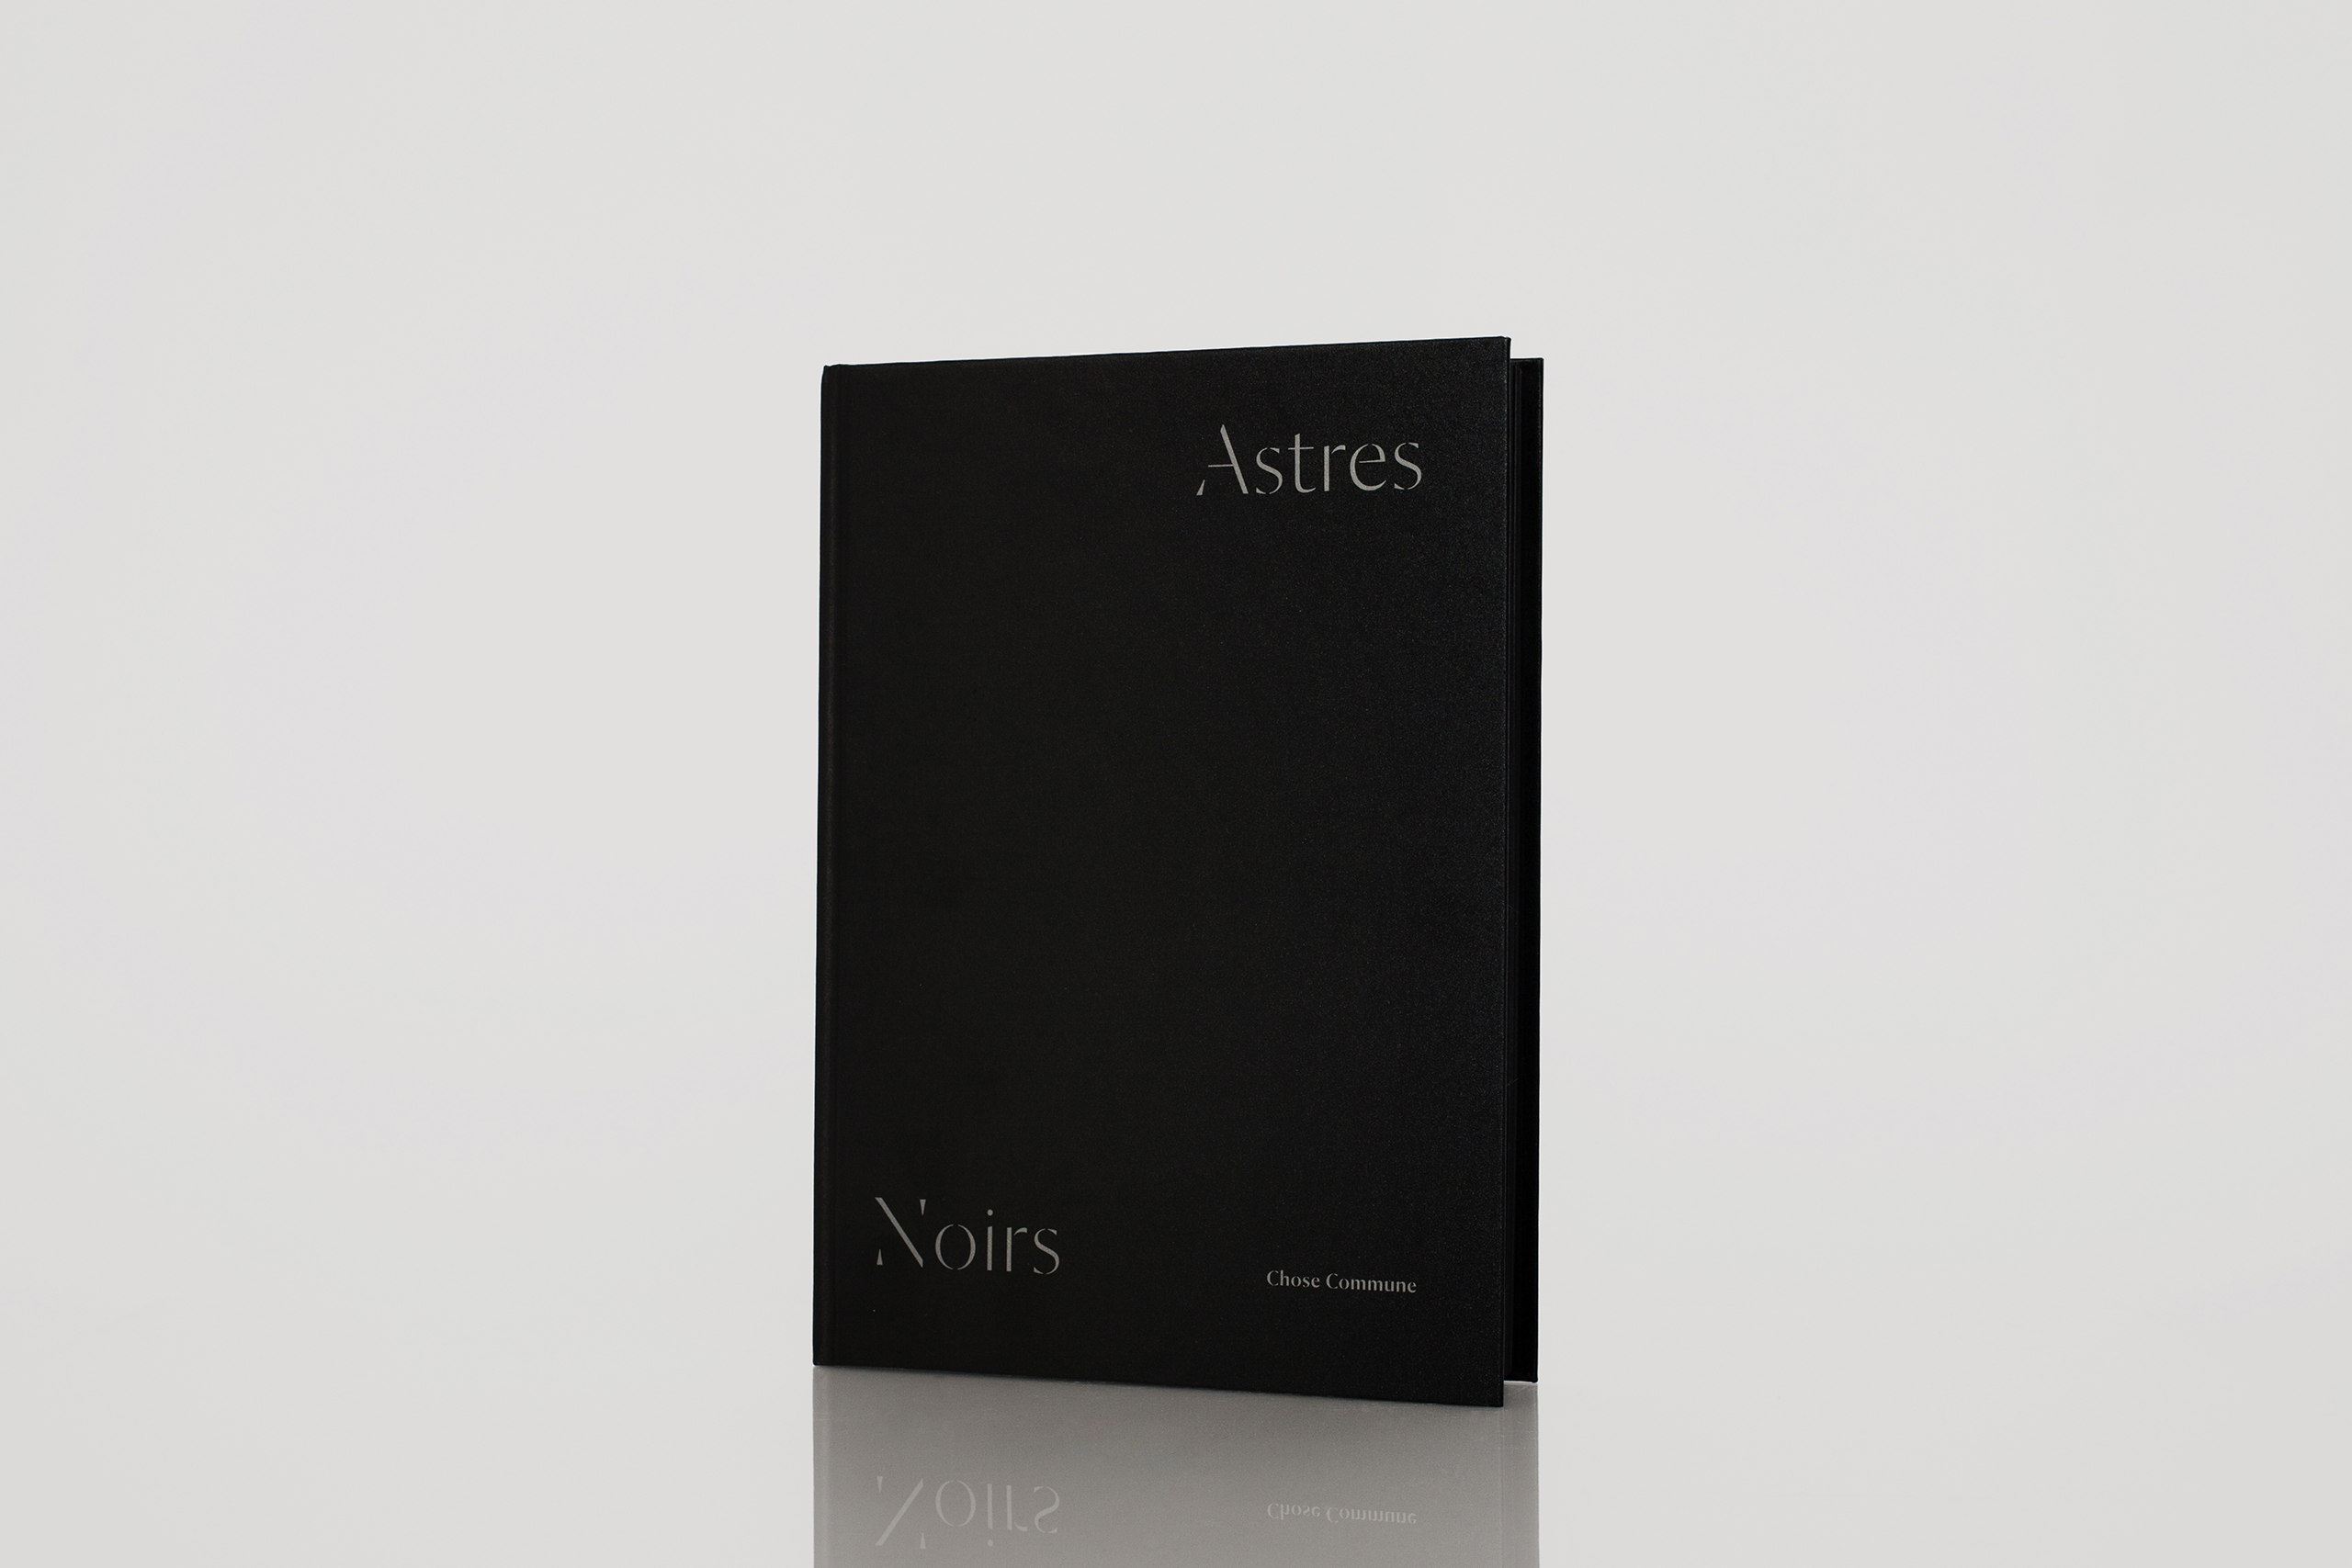 Astres Noirs by Katrin Koenning & Sarker ProtickPublished by Chose Commune